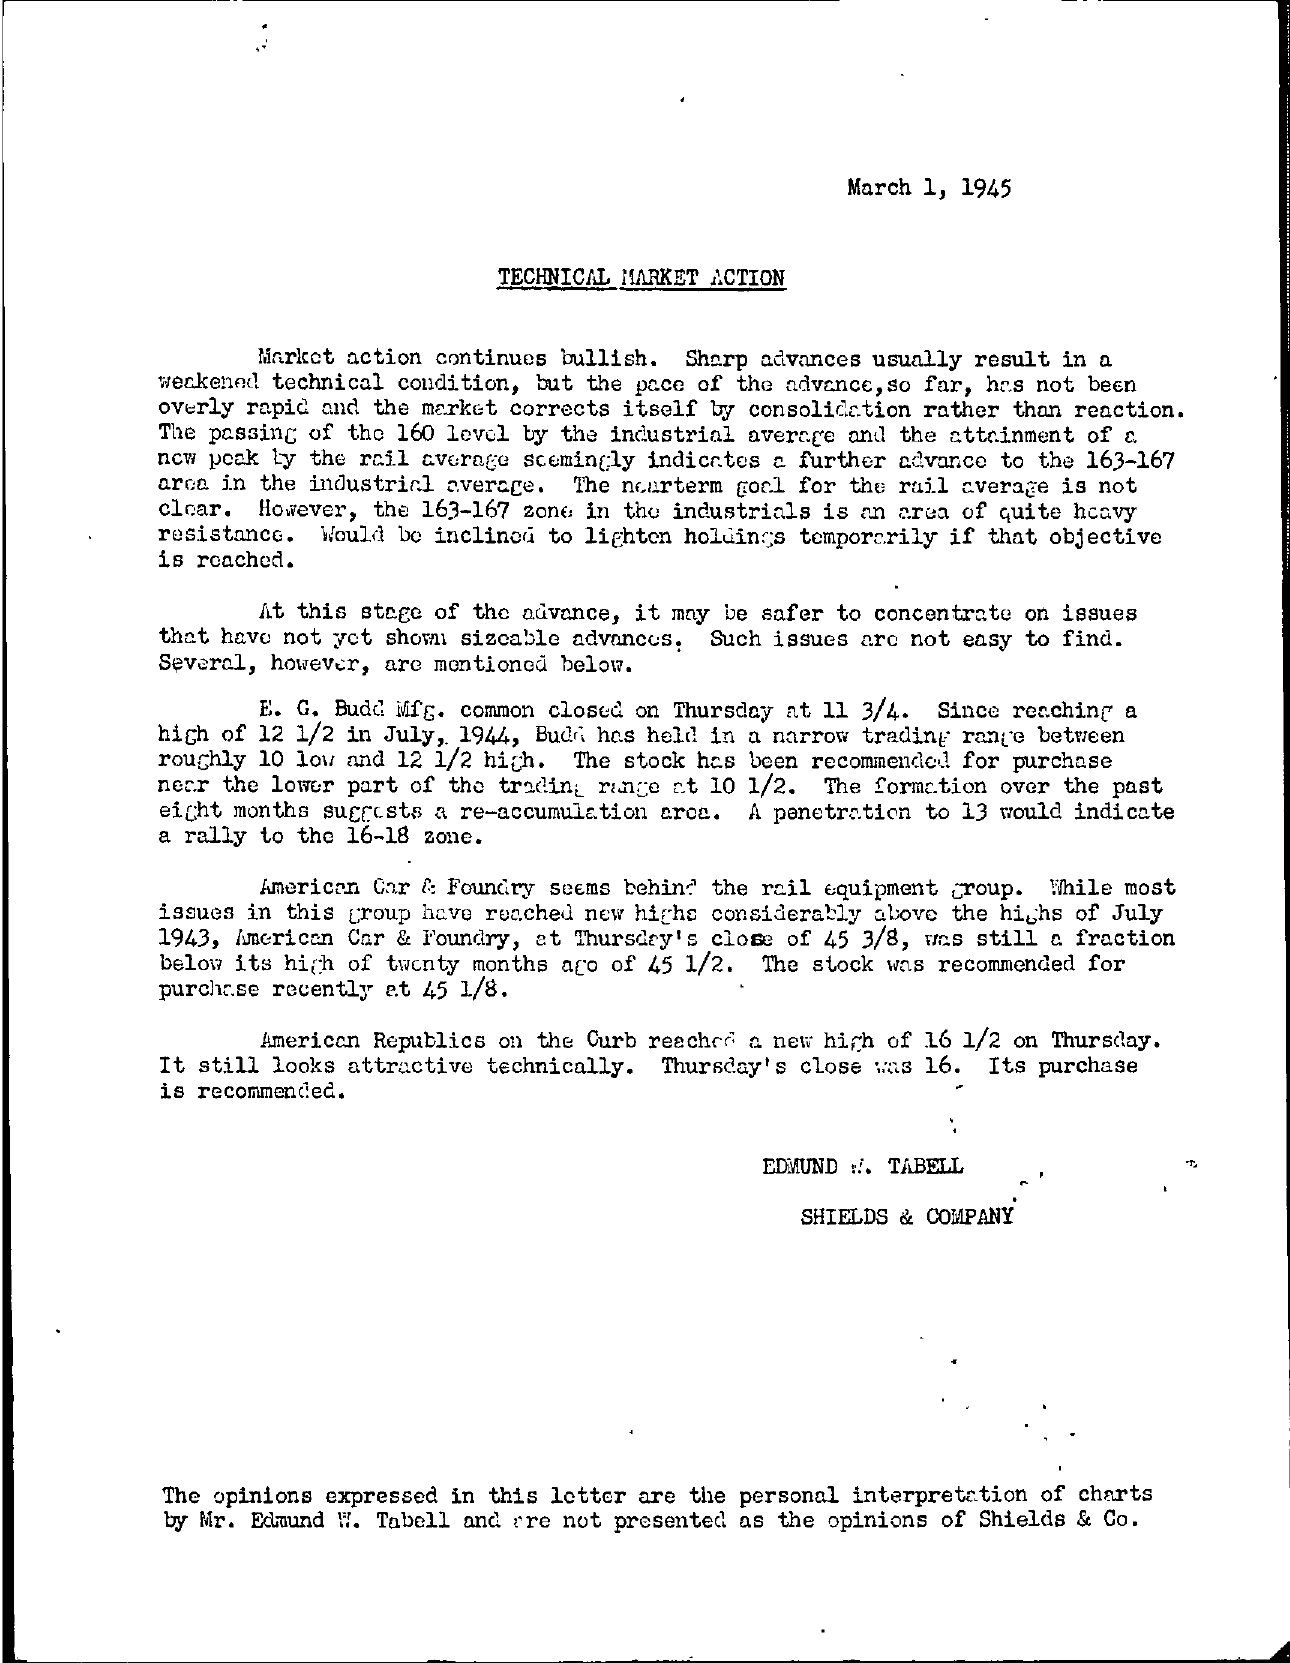 Tabell's Market Letter - March 01, 1945